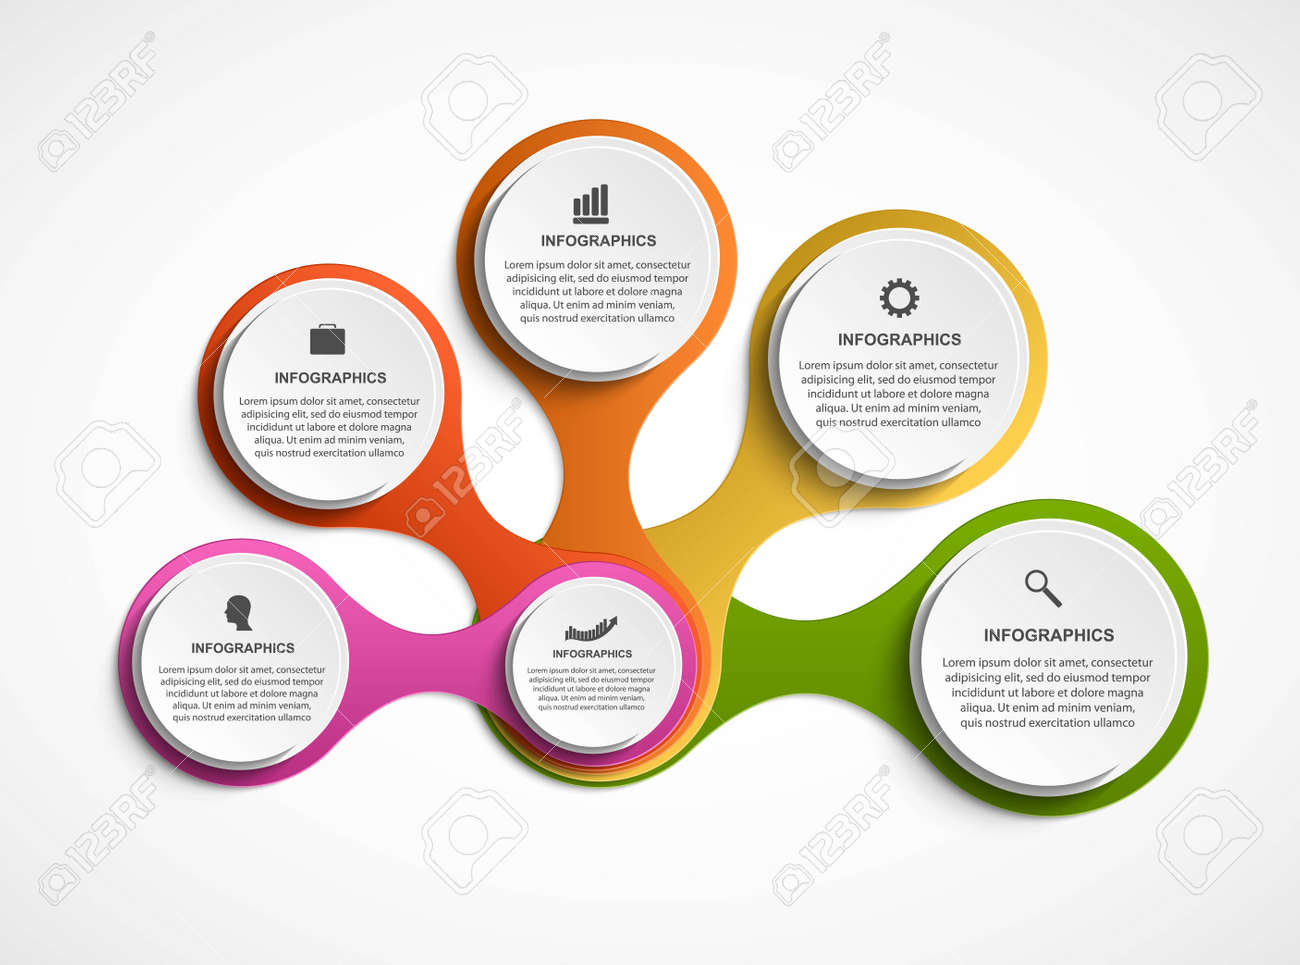 Abstract infographic in the form of metabolic. Design elements. - 157519139